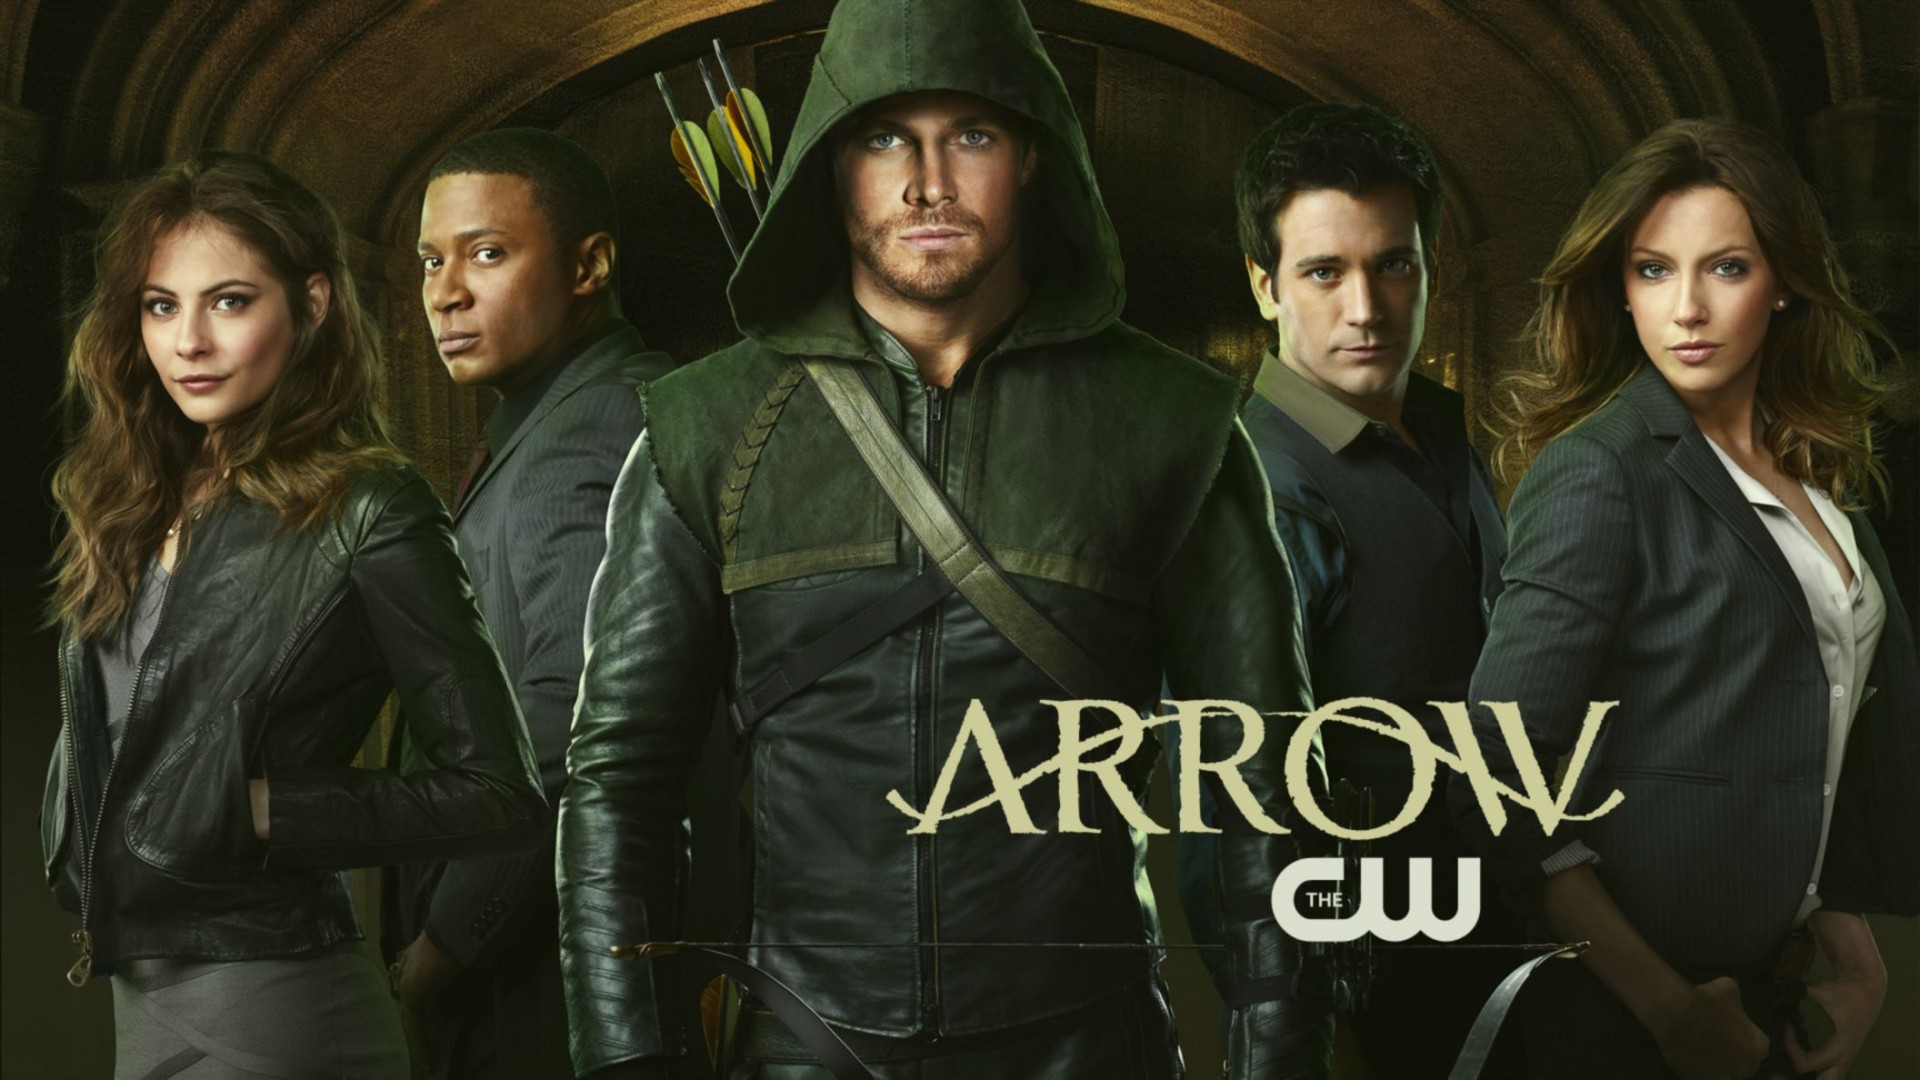 Arrow CW TV Show HD Wallpaper